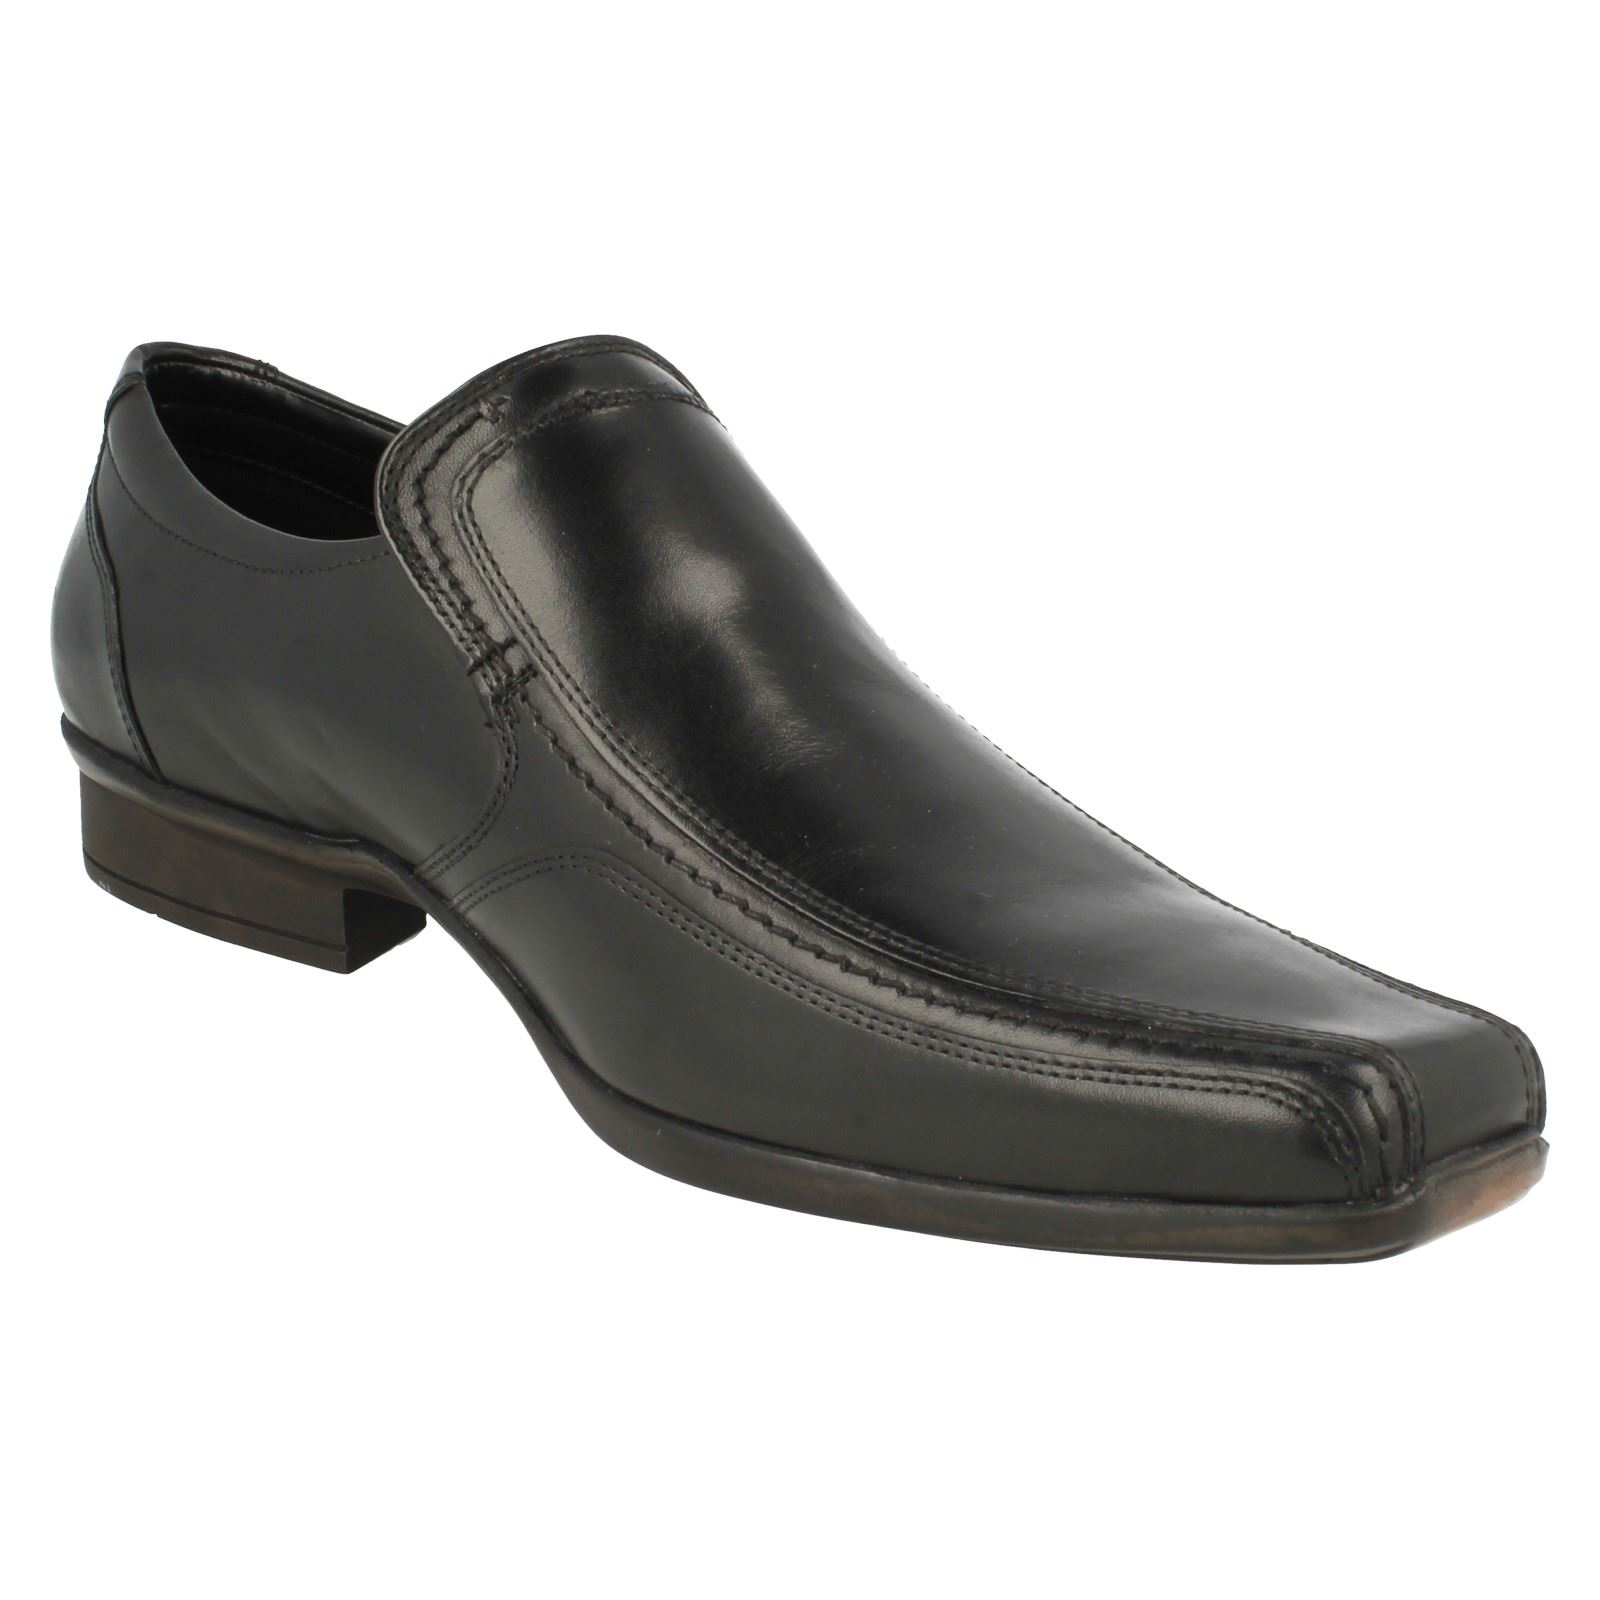 ' Schuhes Herren Clarks' Formal Slip On Schuhes ' - Affix Step ef4b98